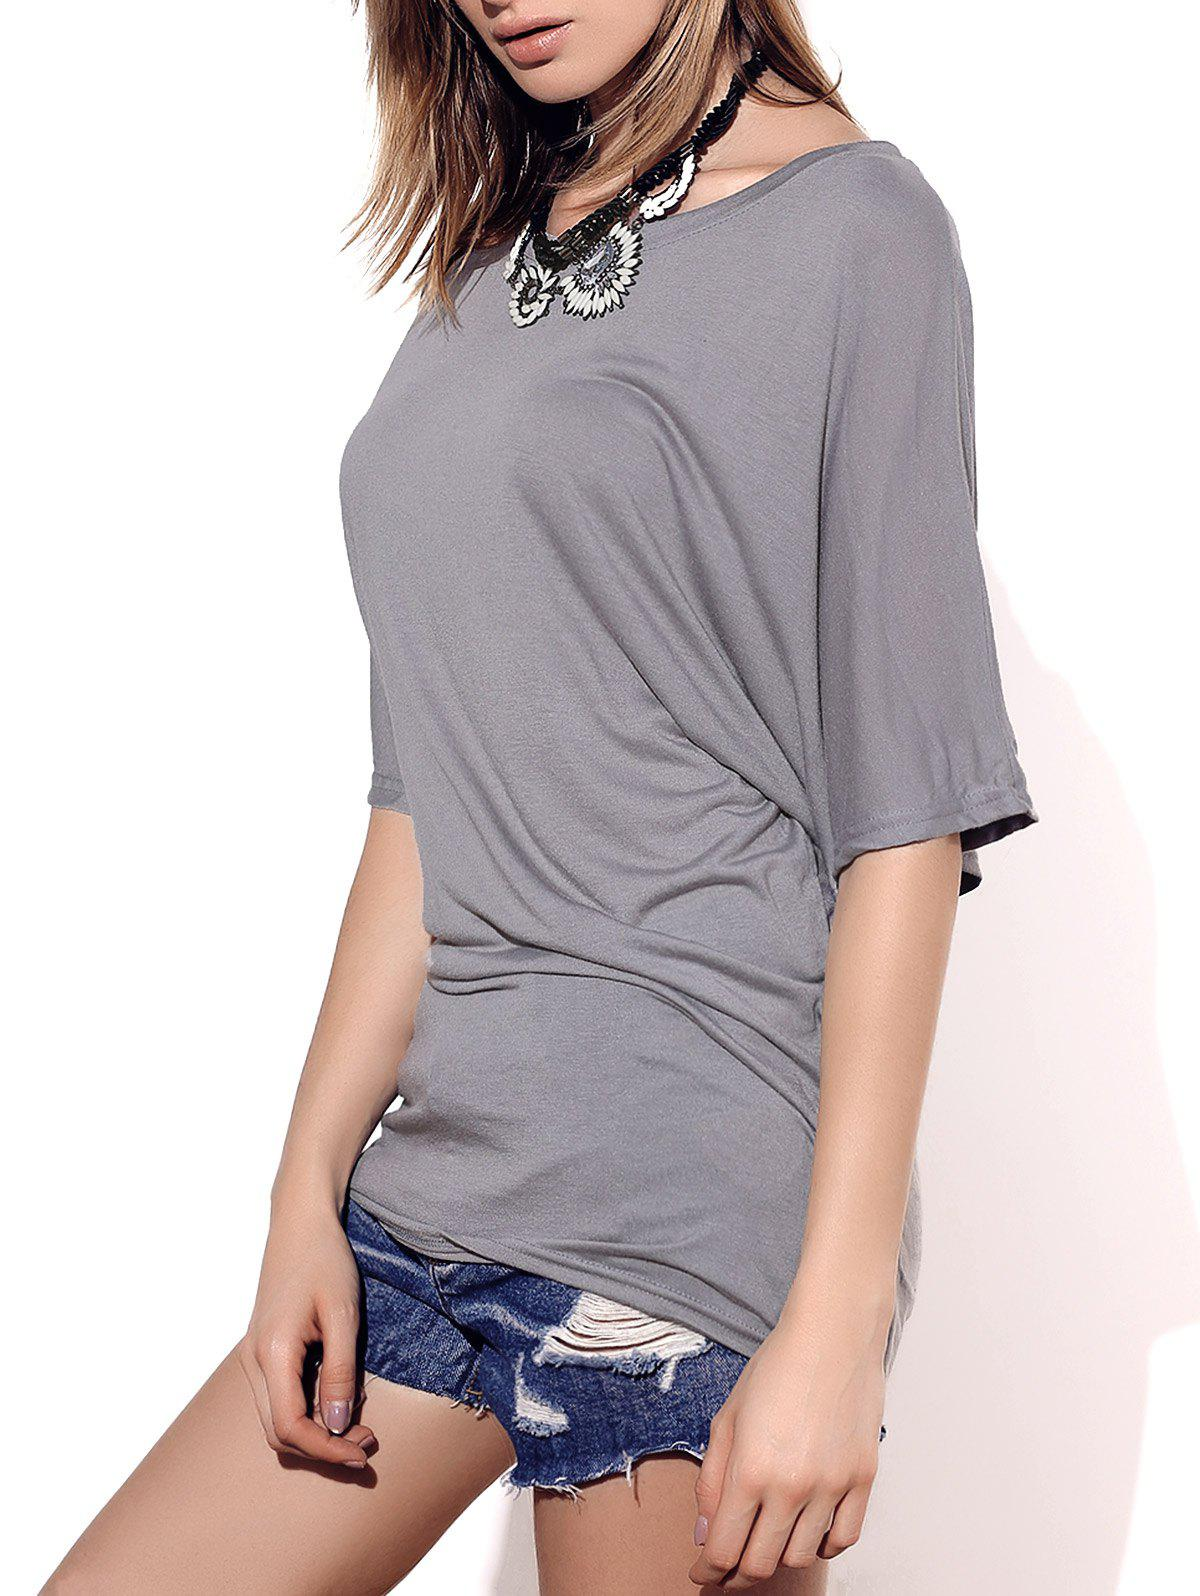 Stylish Boat Neck Short Sleeve Solid Color Women's T-Shirt - GRAY XL